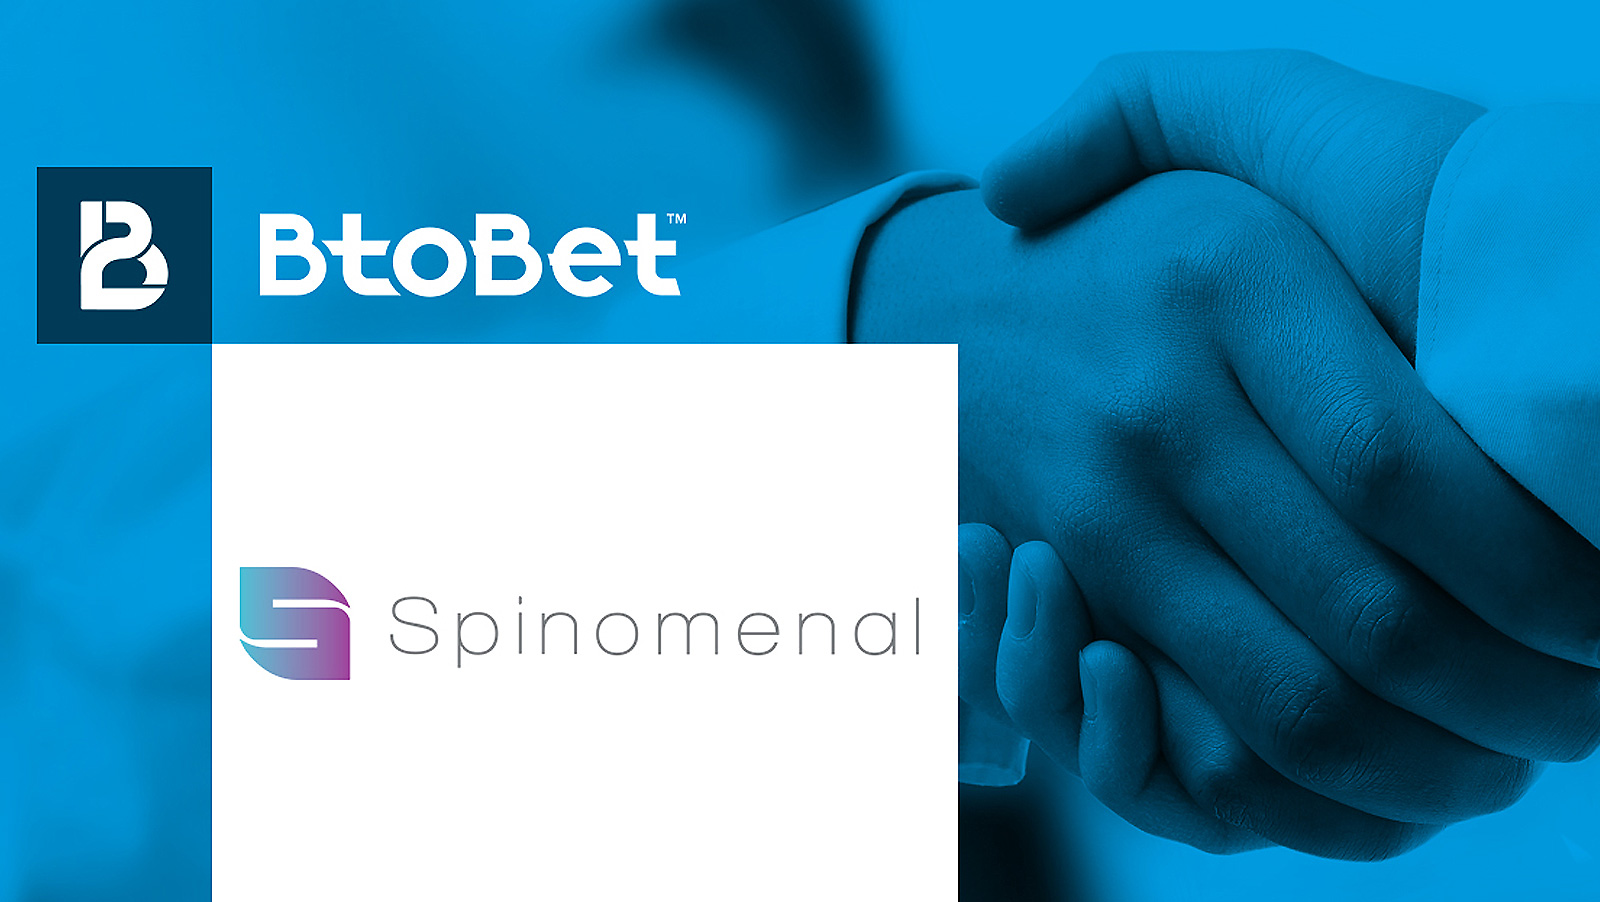 BtoBet and Spinomenal new partners in iGaming